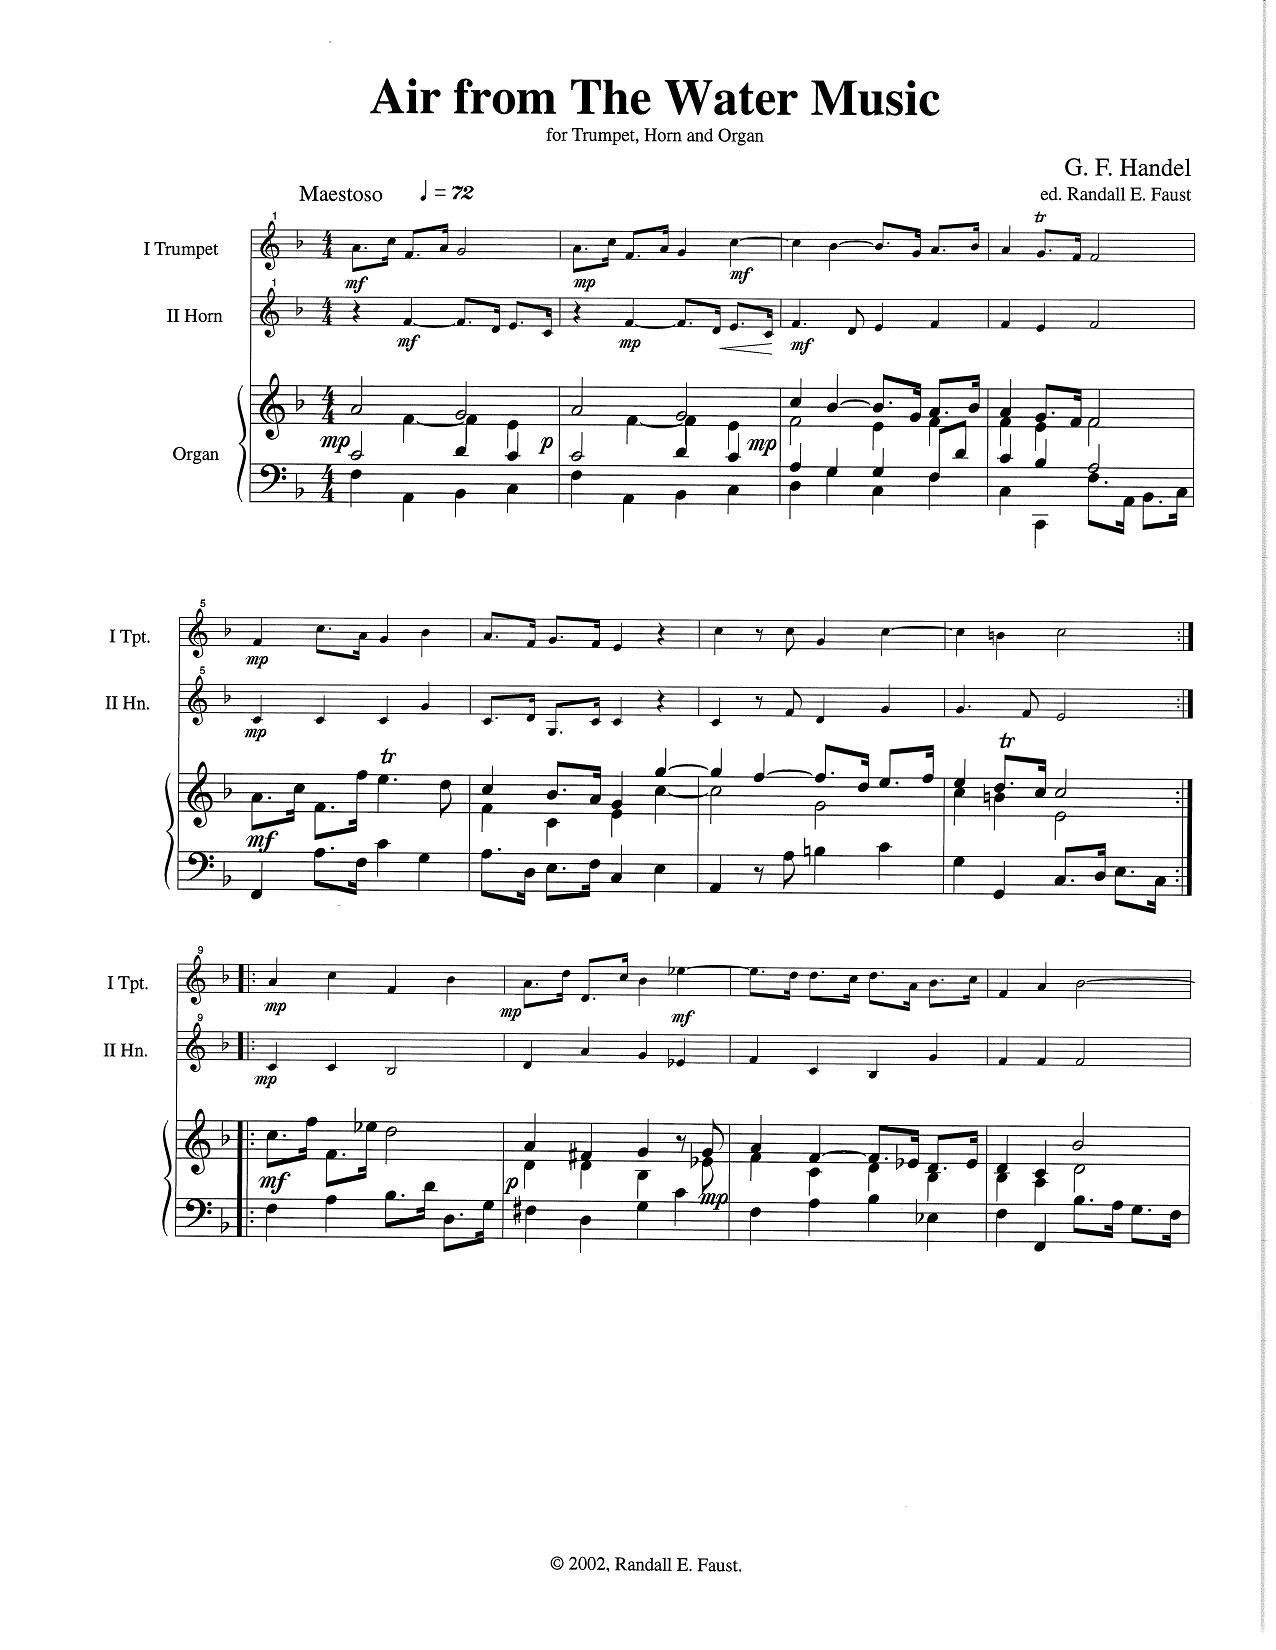 Air from The Water Music Suite for Trumpet, Horn, and Organ